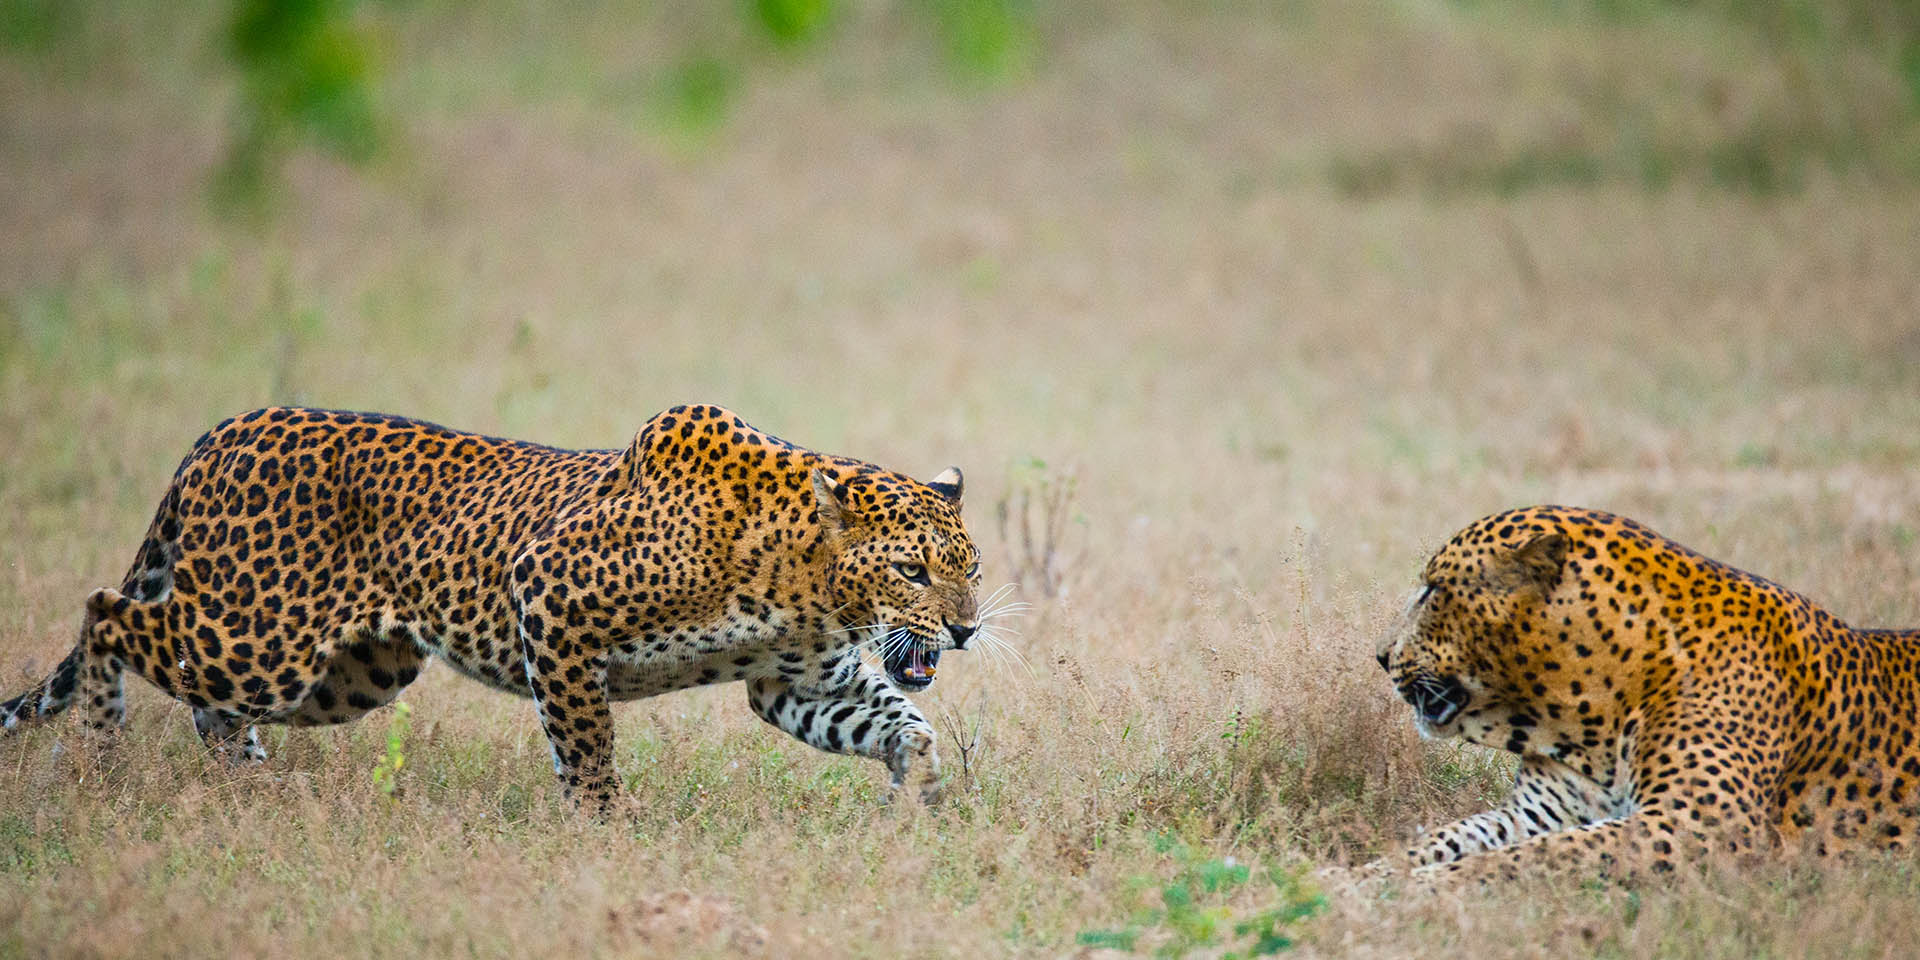 Looking for Sri Lankan Leopards in Luxury